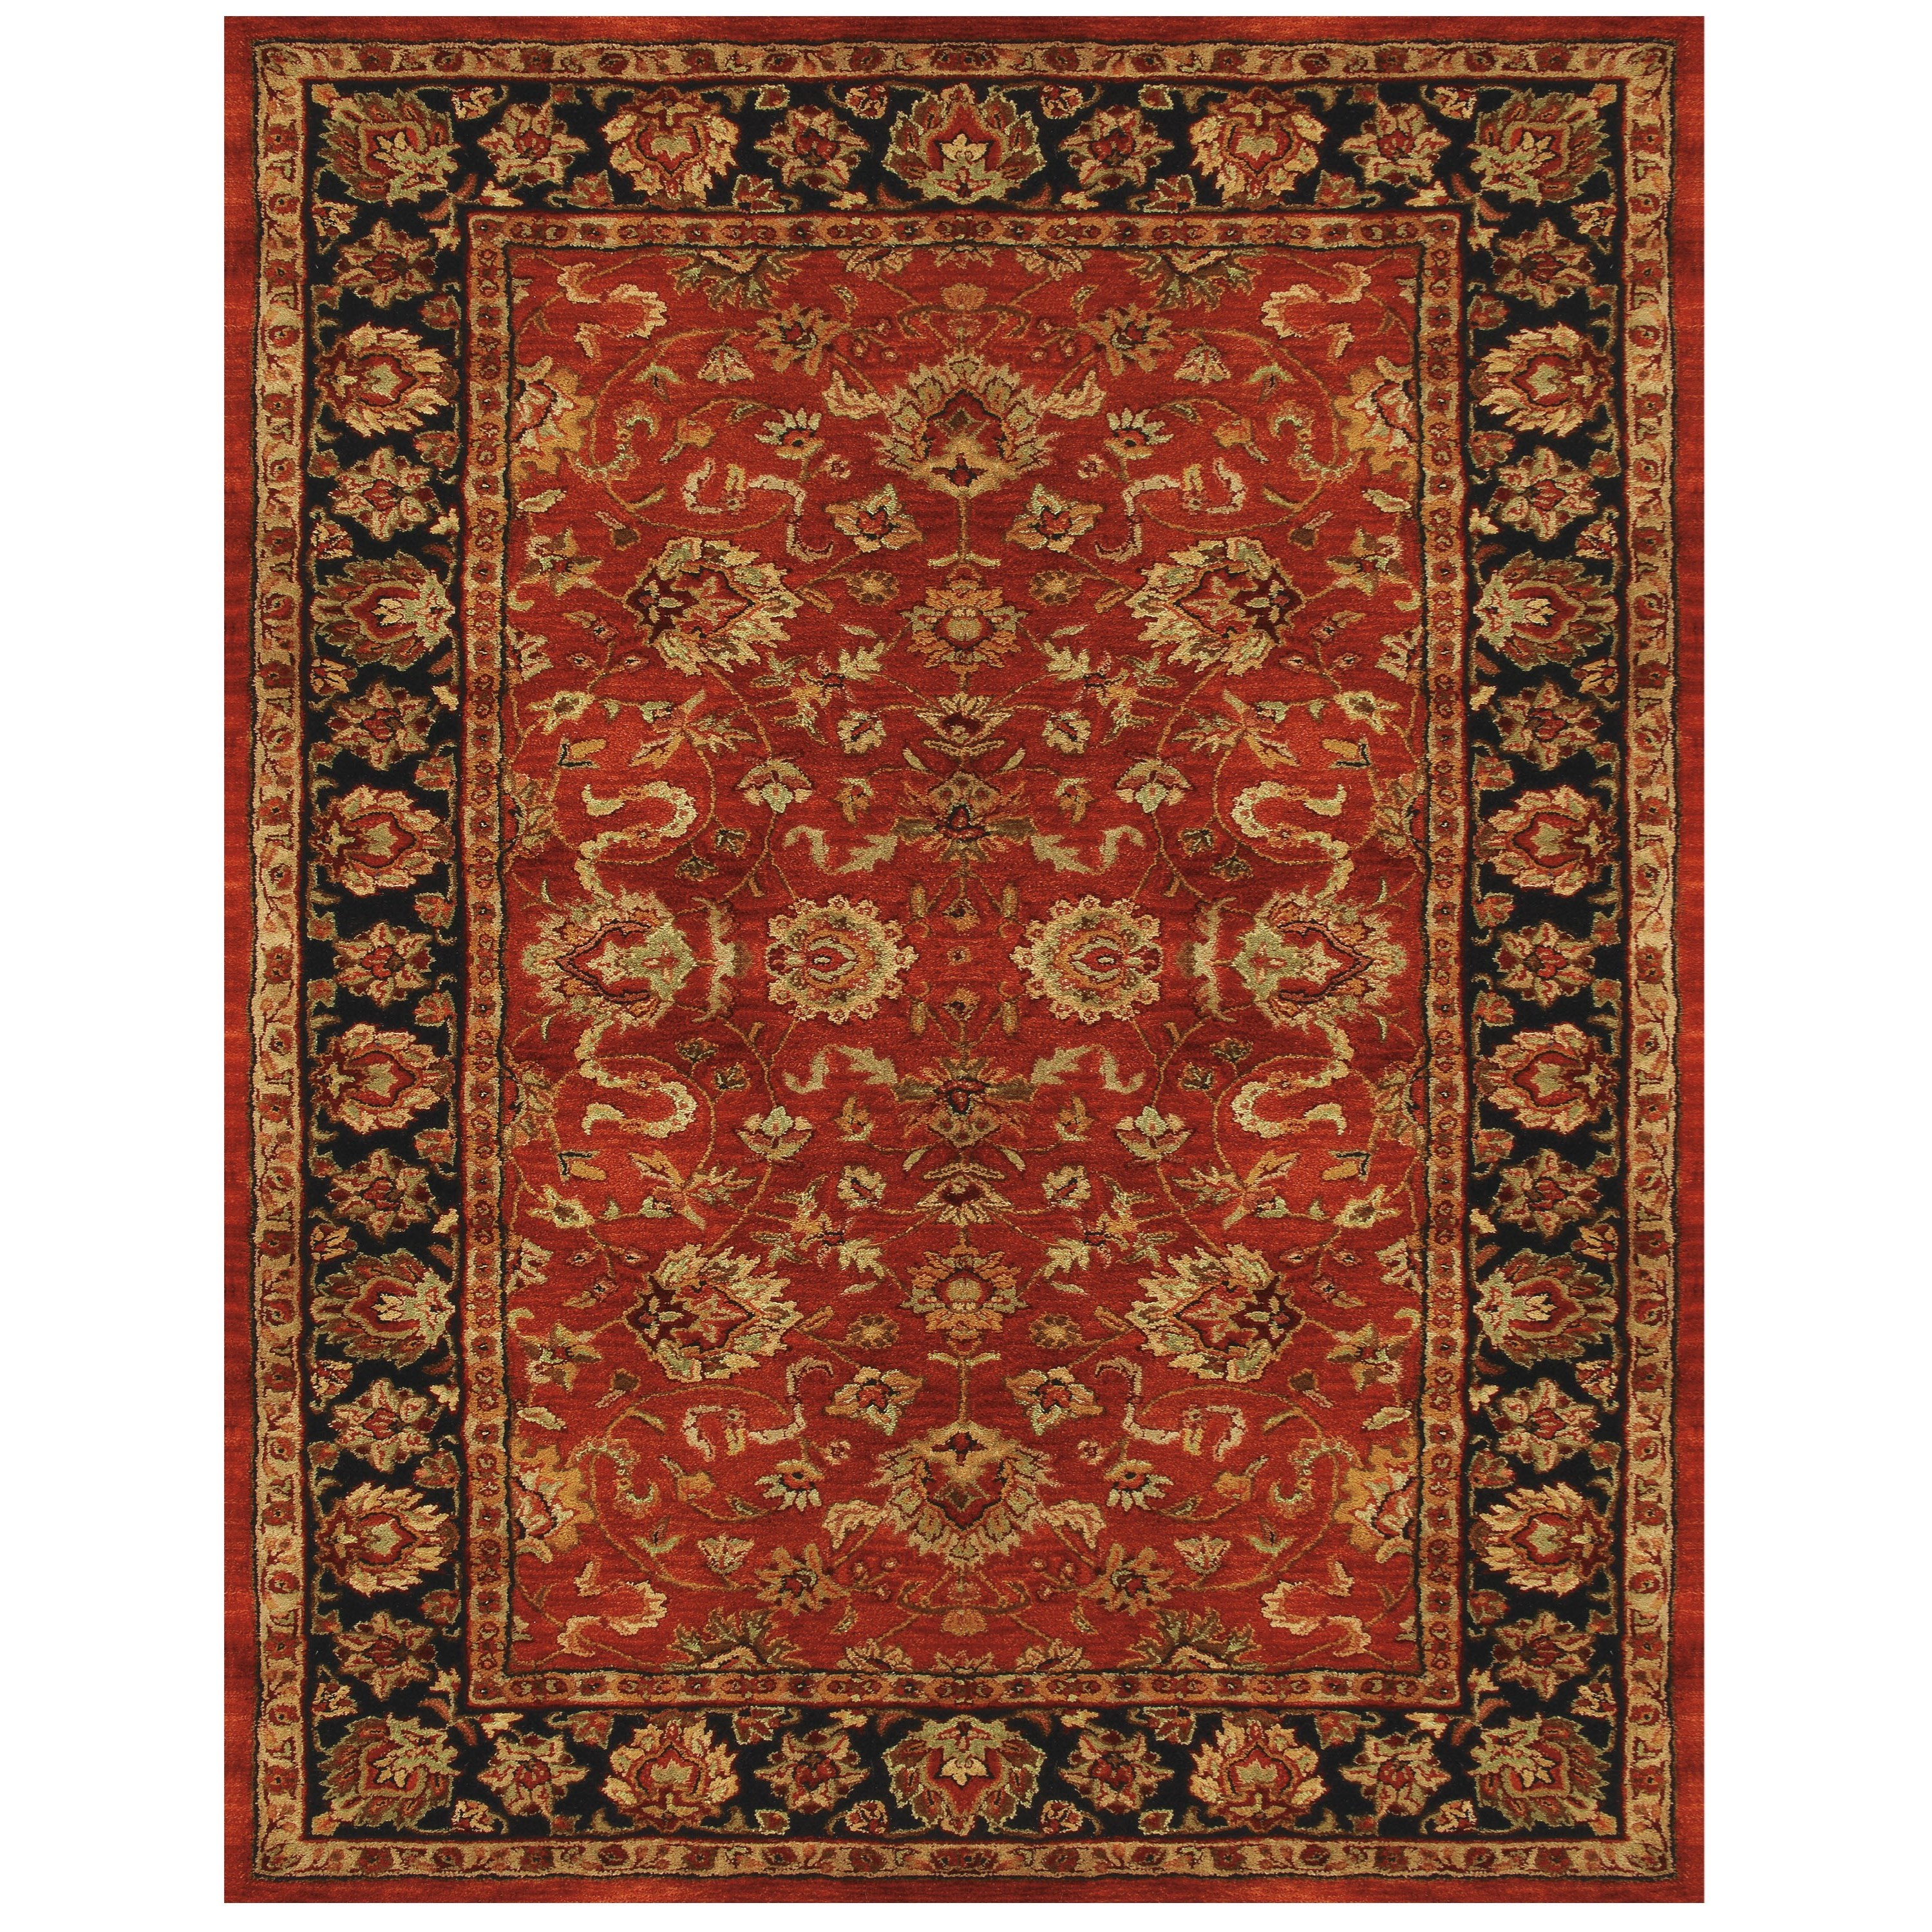 Alexandra Red/Navy 5' x 8' Area Rug by Feizy Rugs at Sprintz Furniture